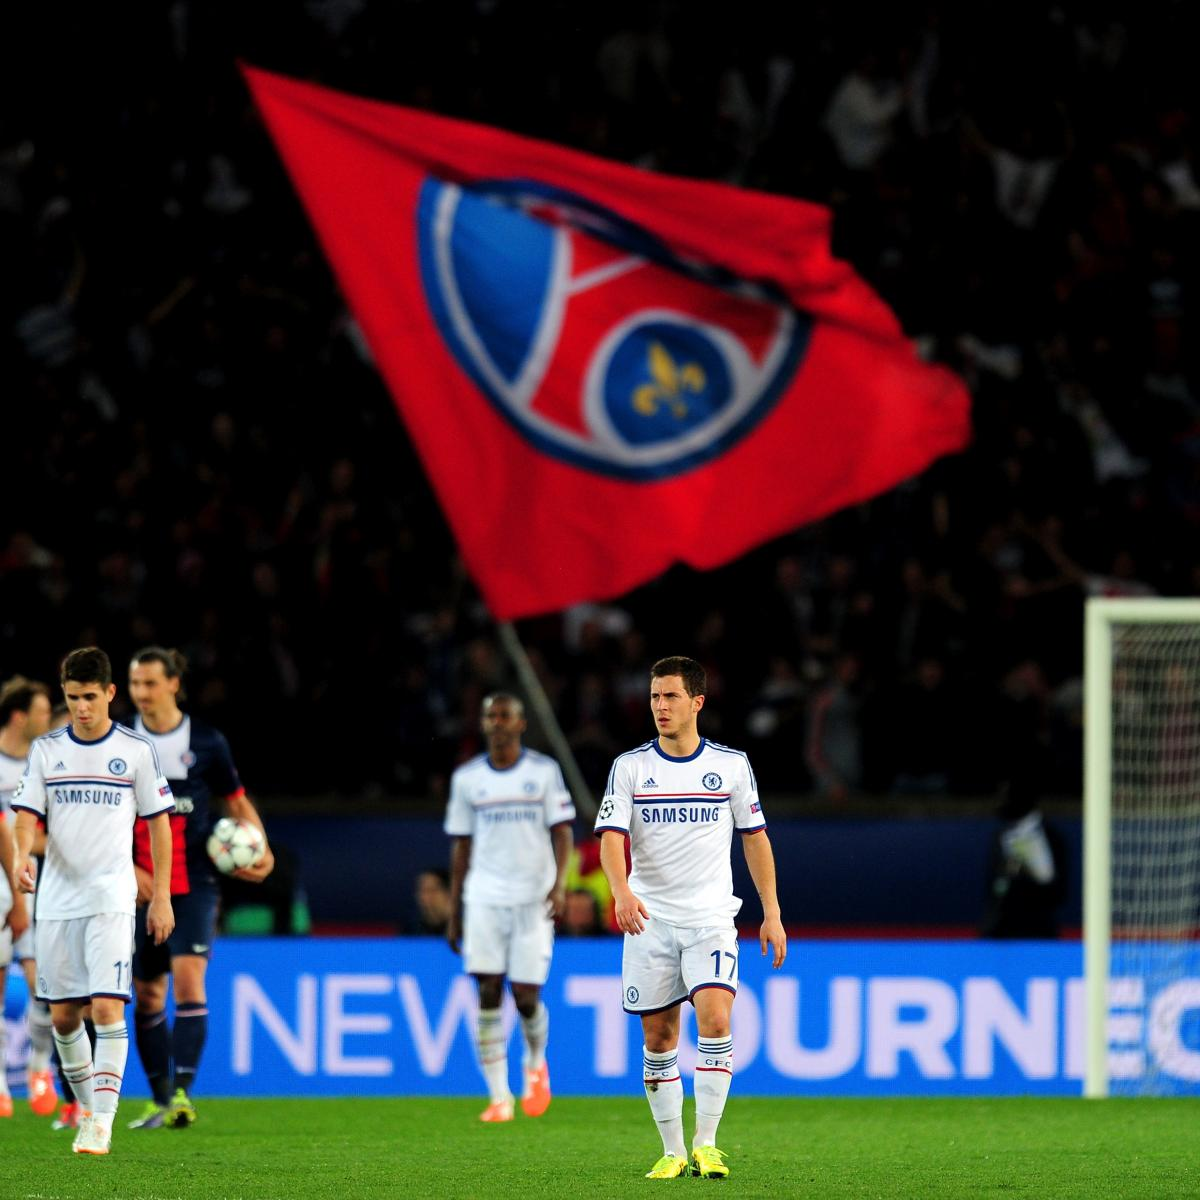 Psg Vs Chelsea Live Score Highlights From Champions: Champions League 2014: Chelsea Vs. PSG Live Stream, Stats